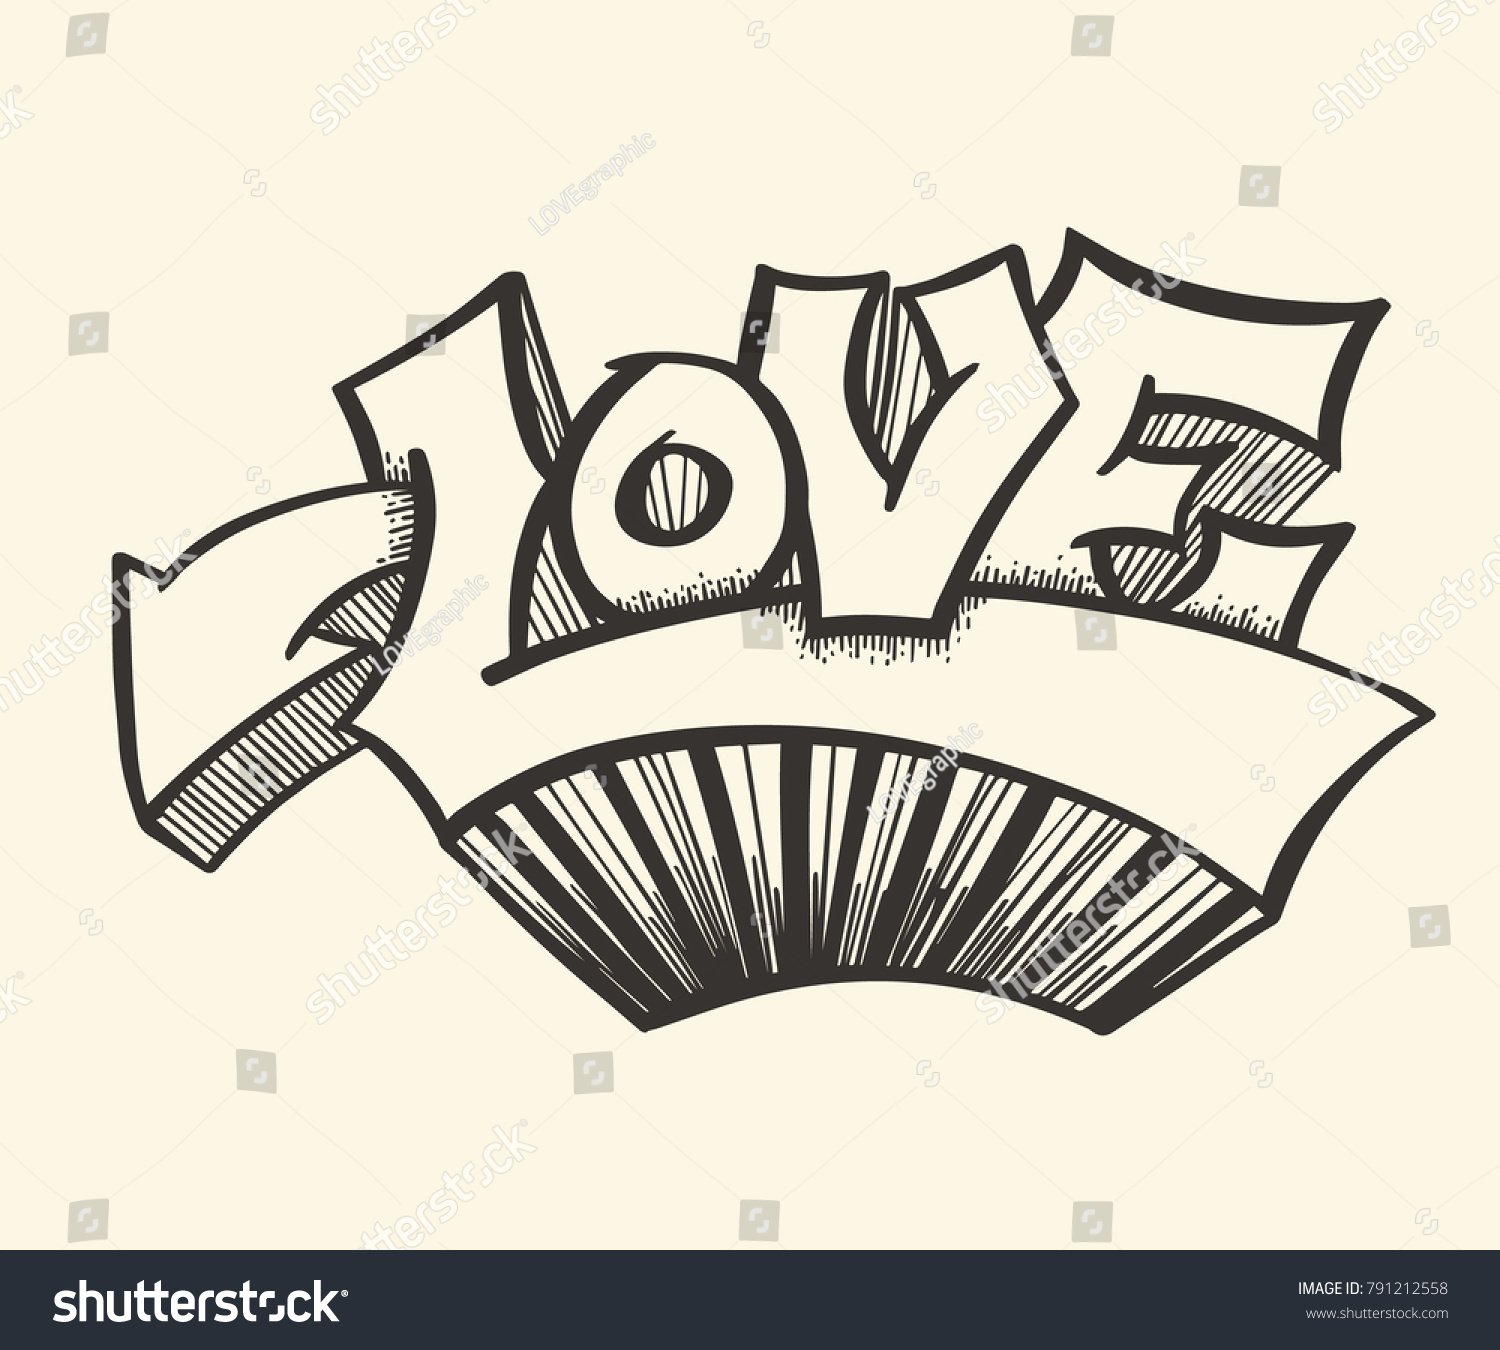 Arrow and love doodle 3d style vector illustration graffiti for love concept valentine and wedding